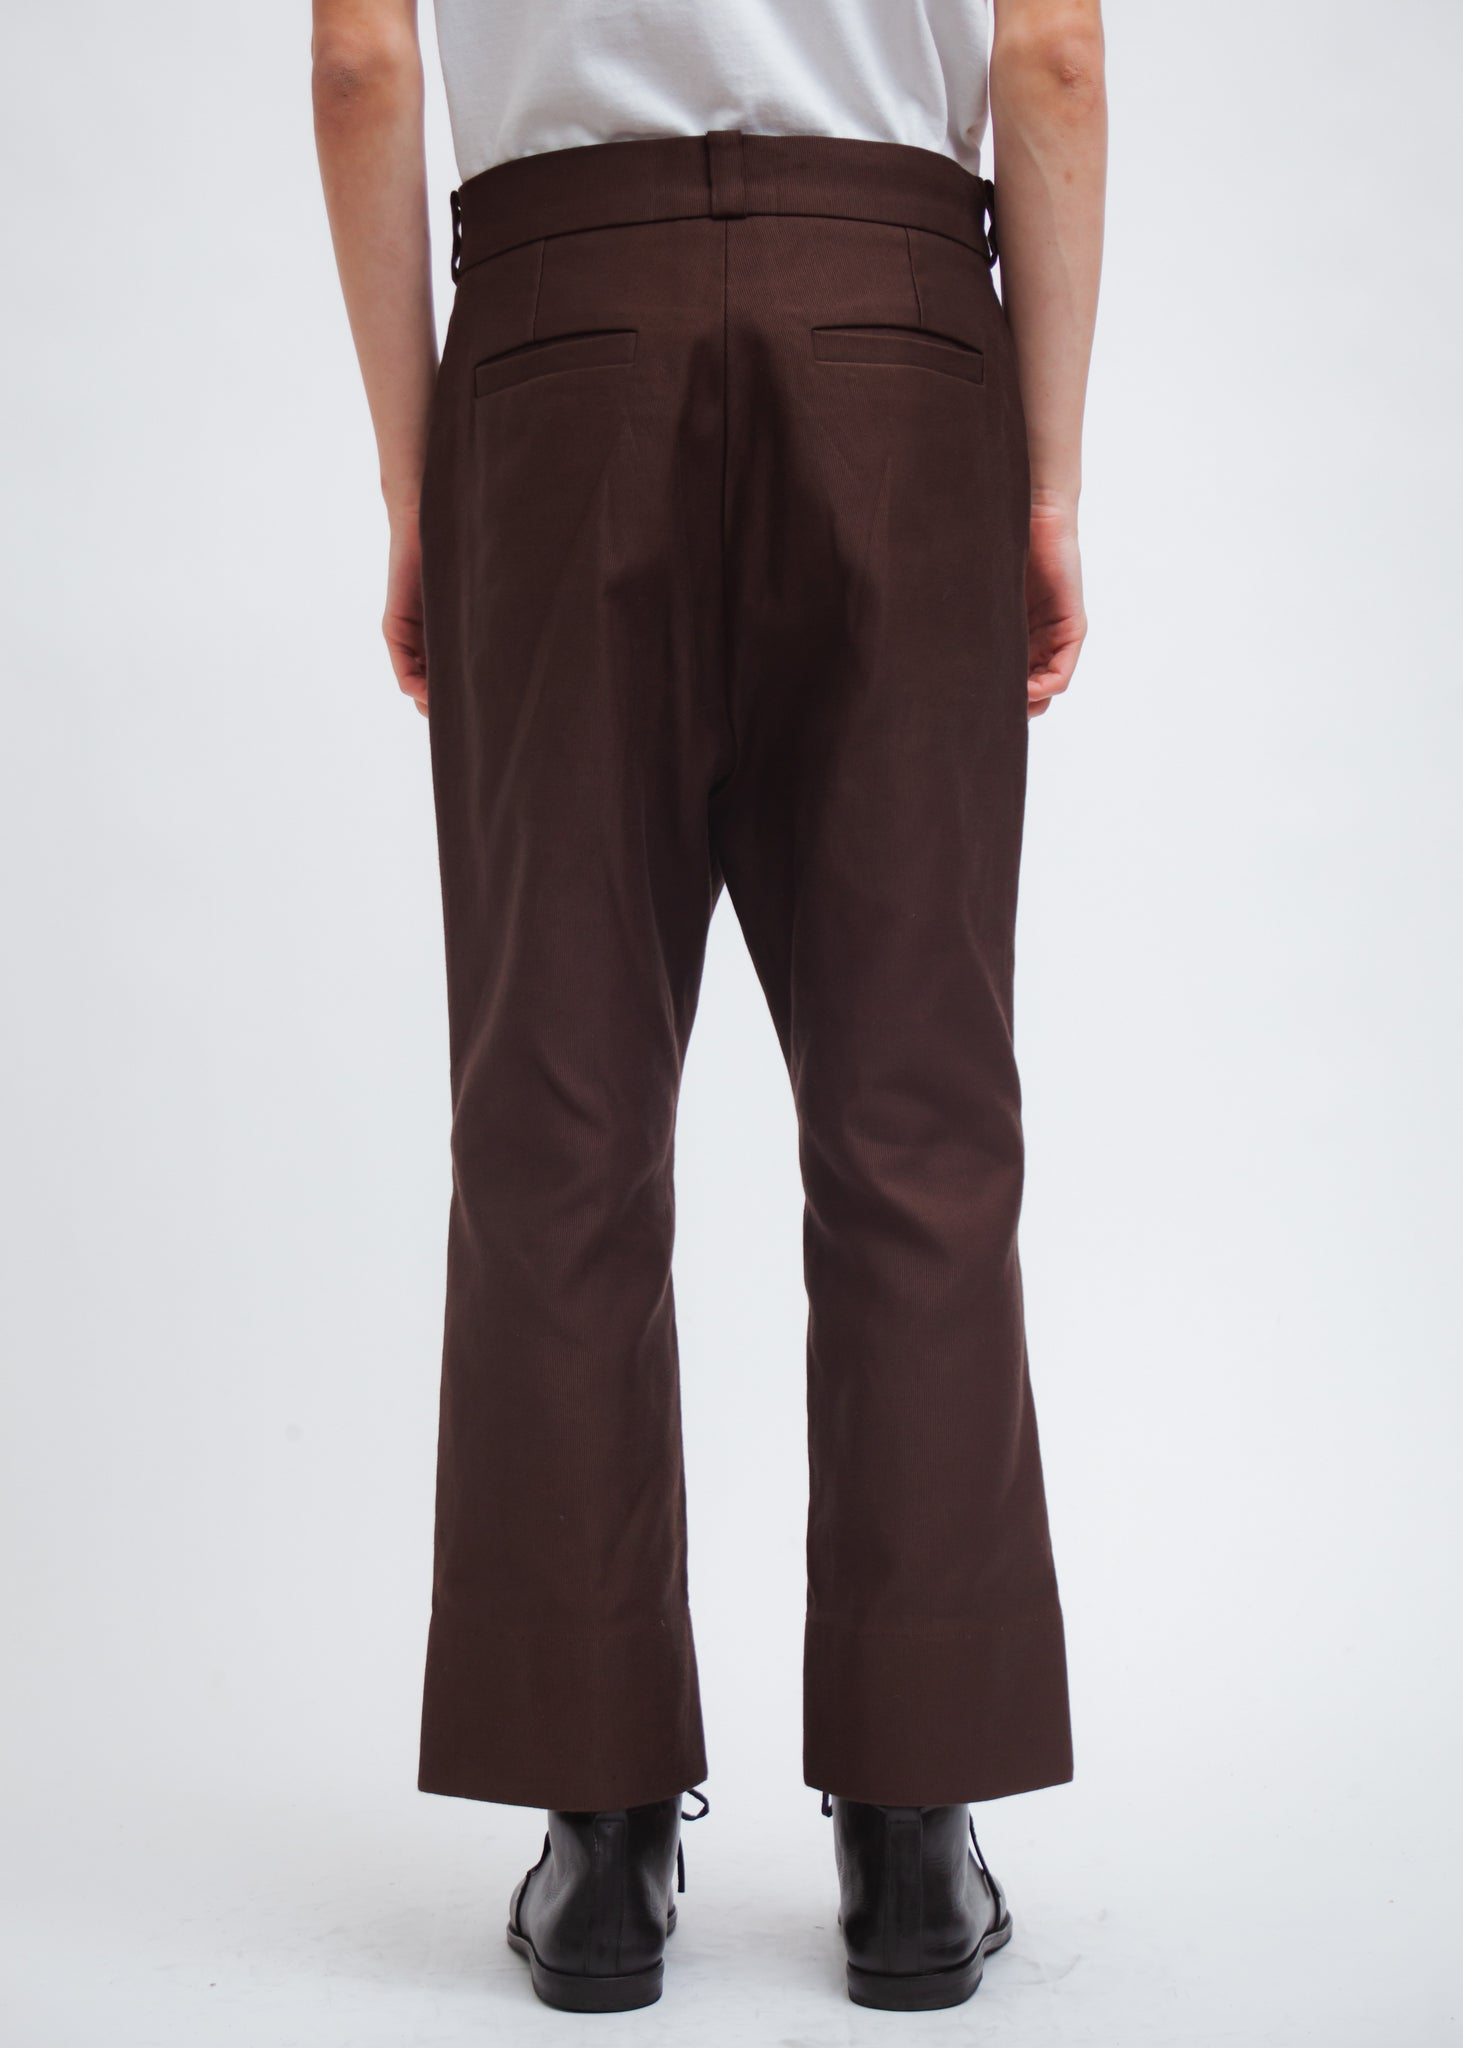 Omar Afridi Rover Trousers (German Brown)